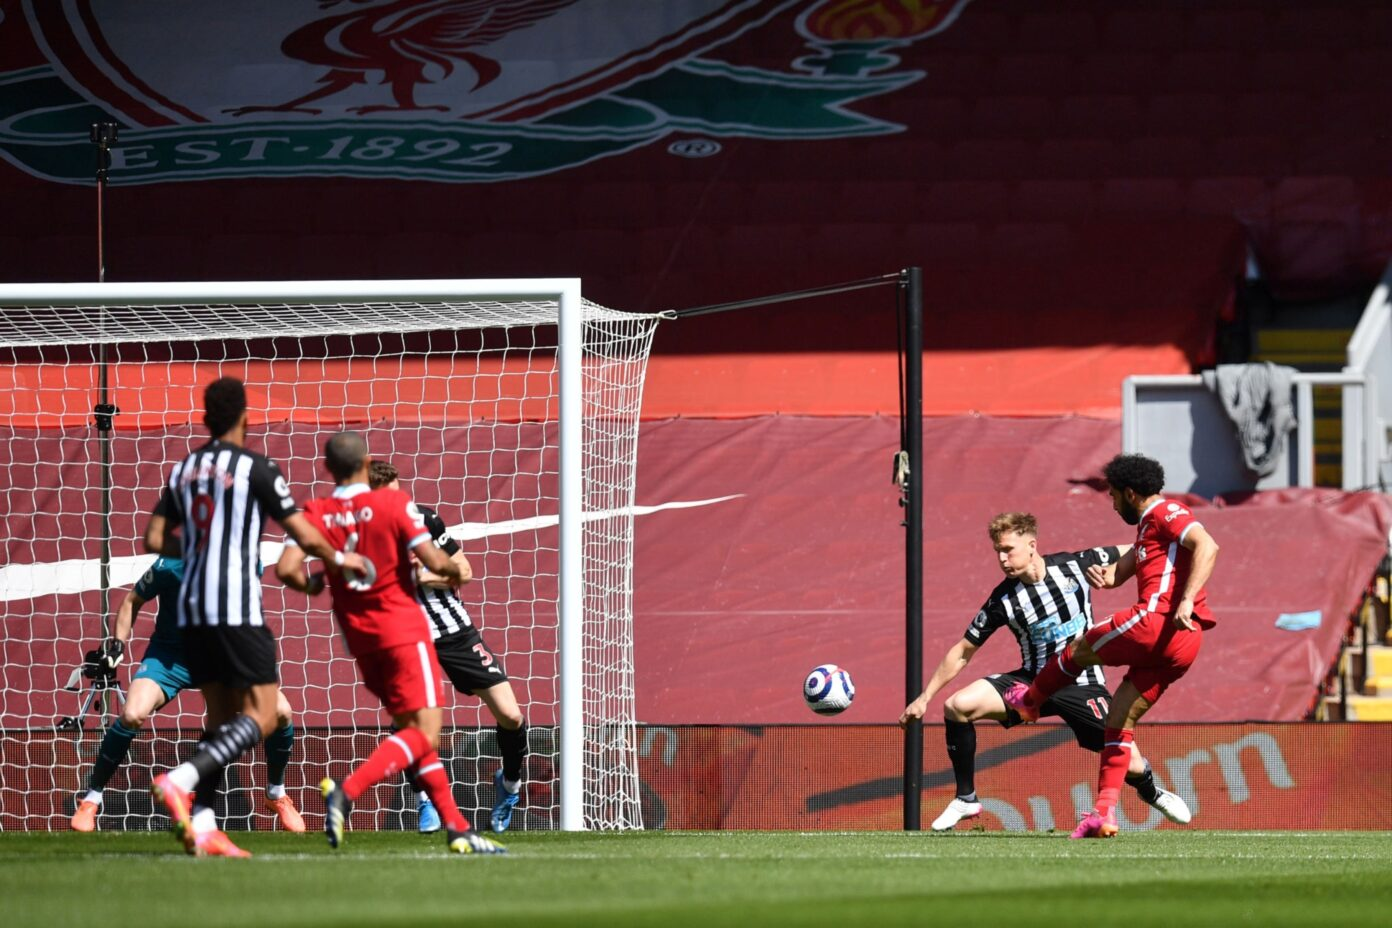 Liverpool 1-1 Newcastle United - Watch the goals and highlights (Video)